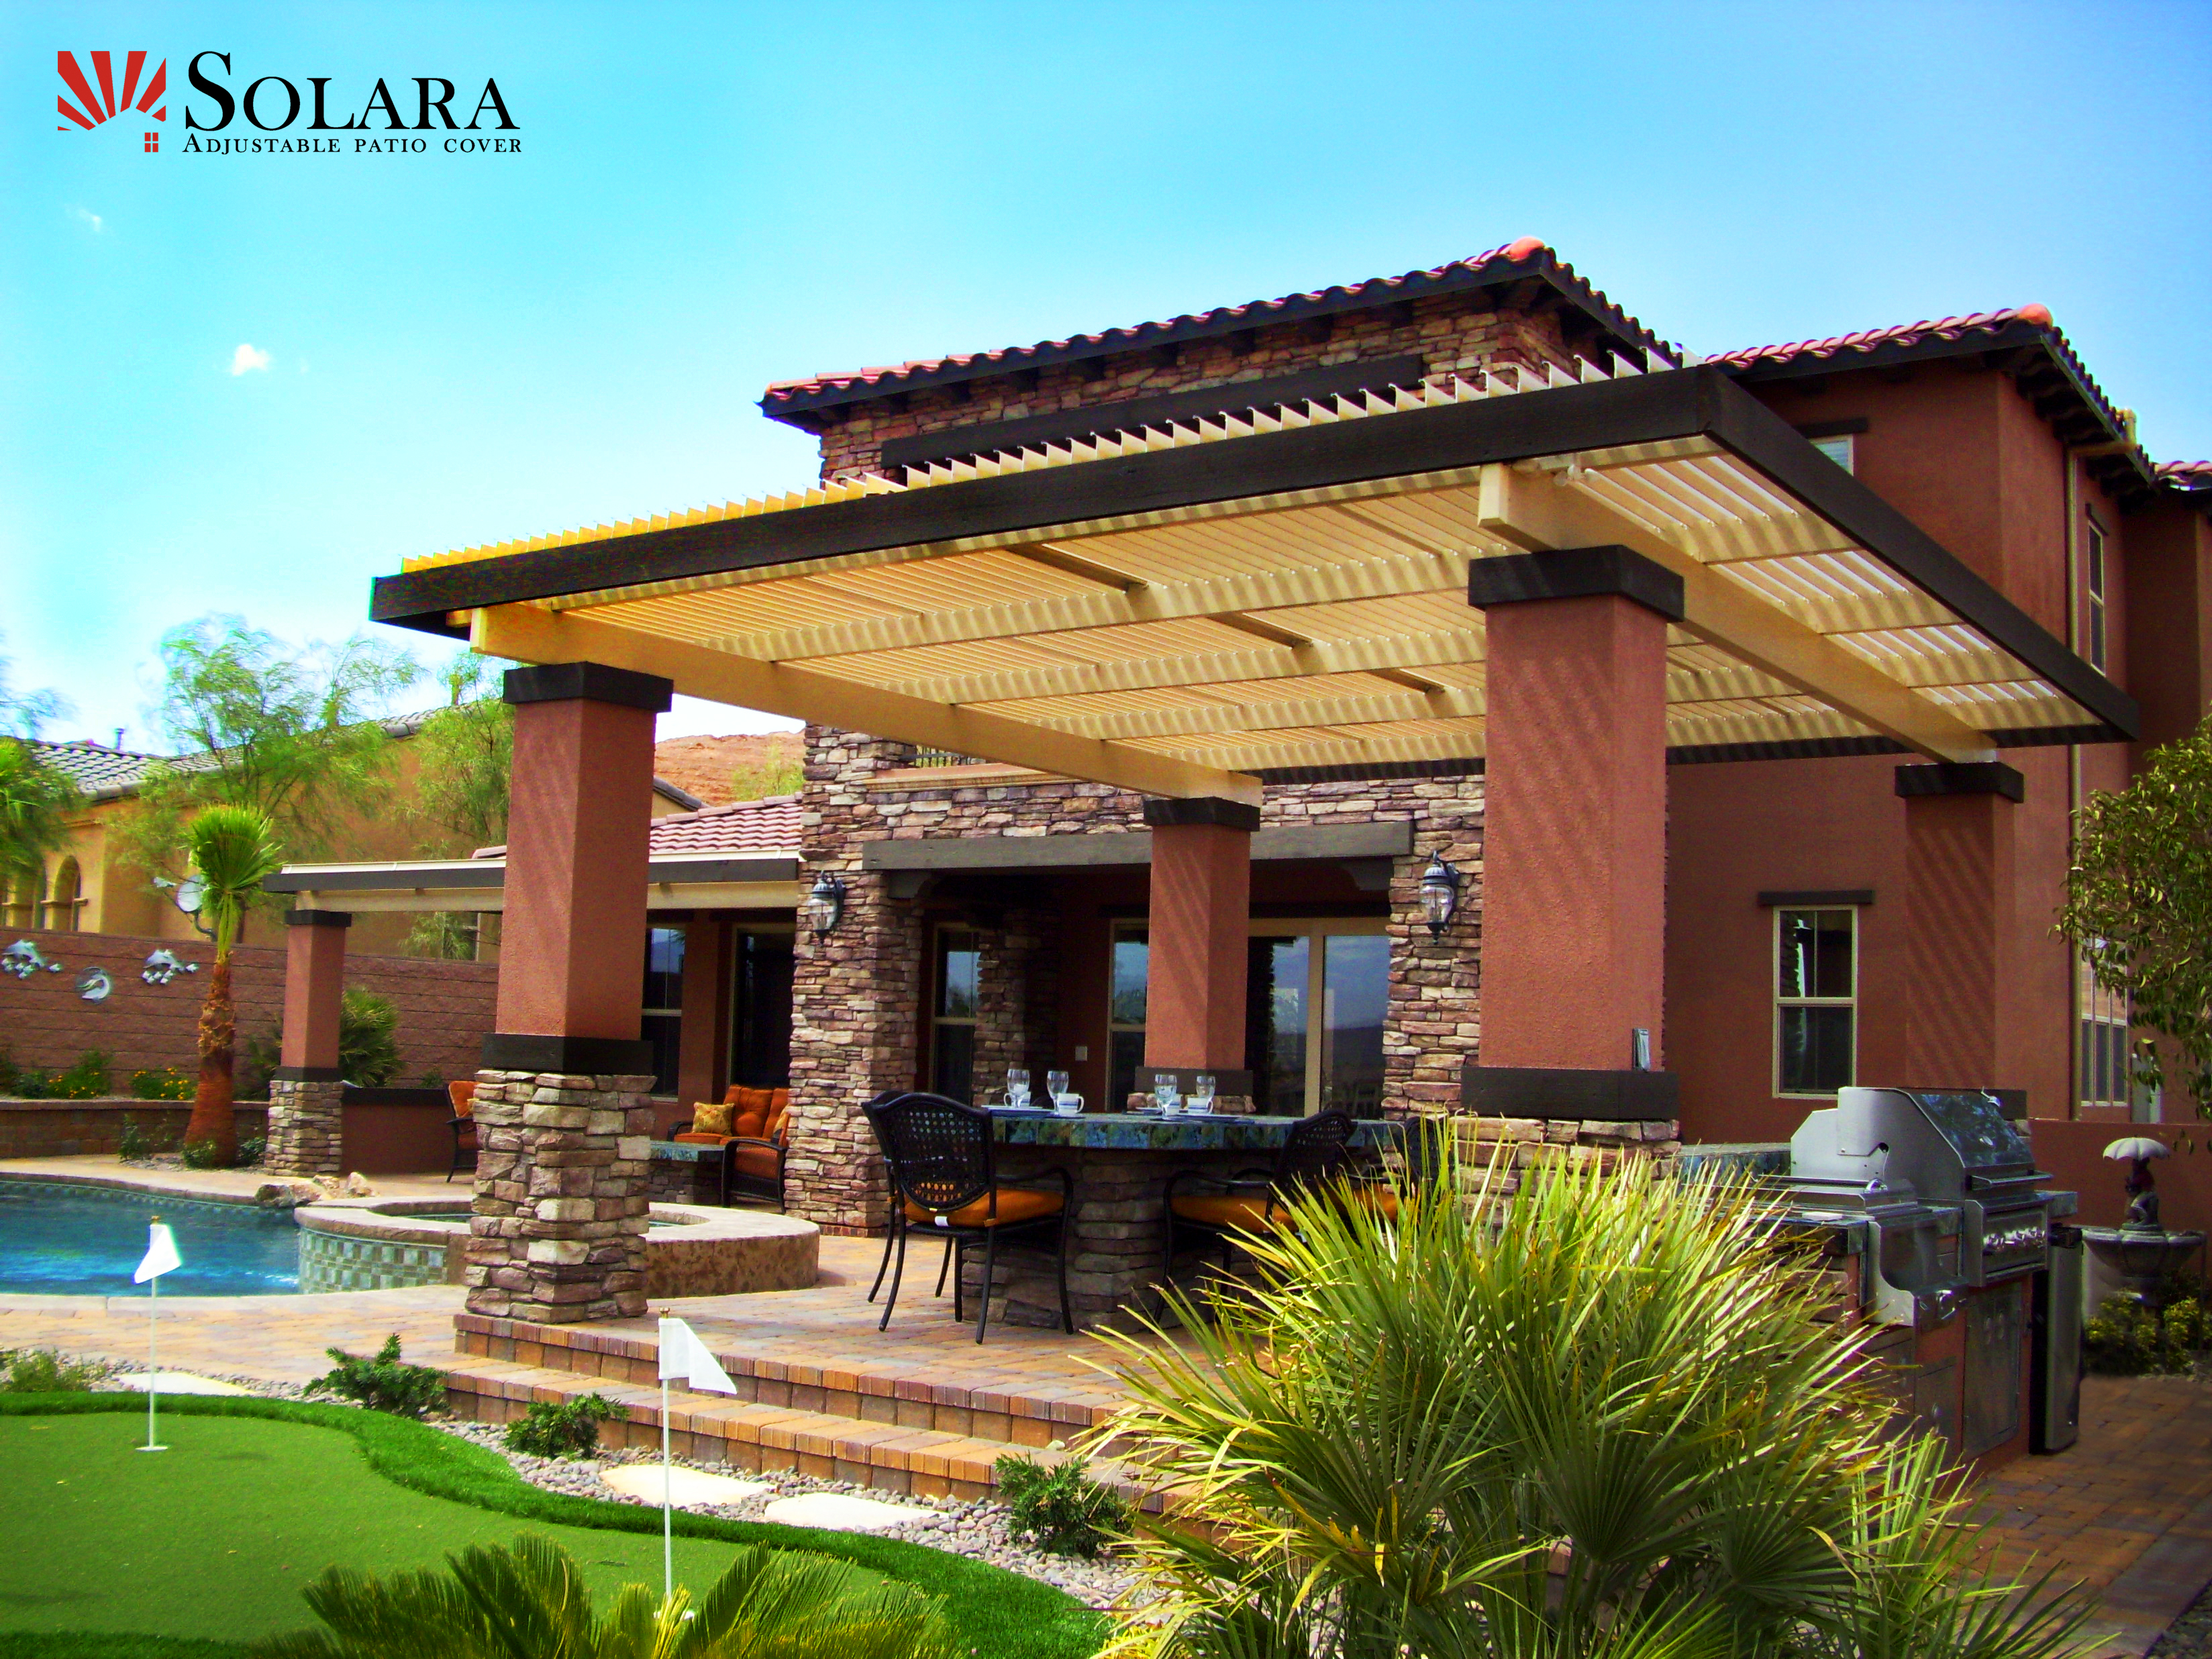 Make The Best Out Of Your Outdoor Living With The Solara Patio Cover